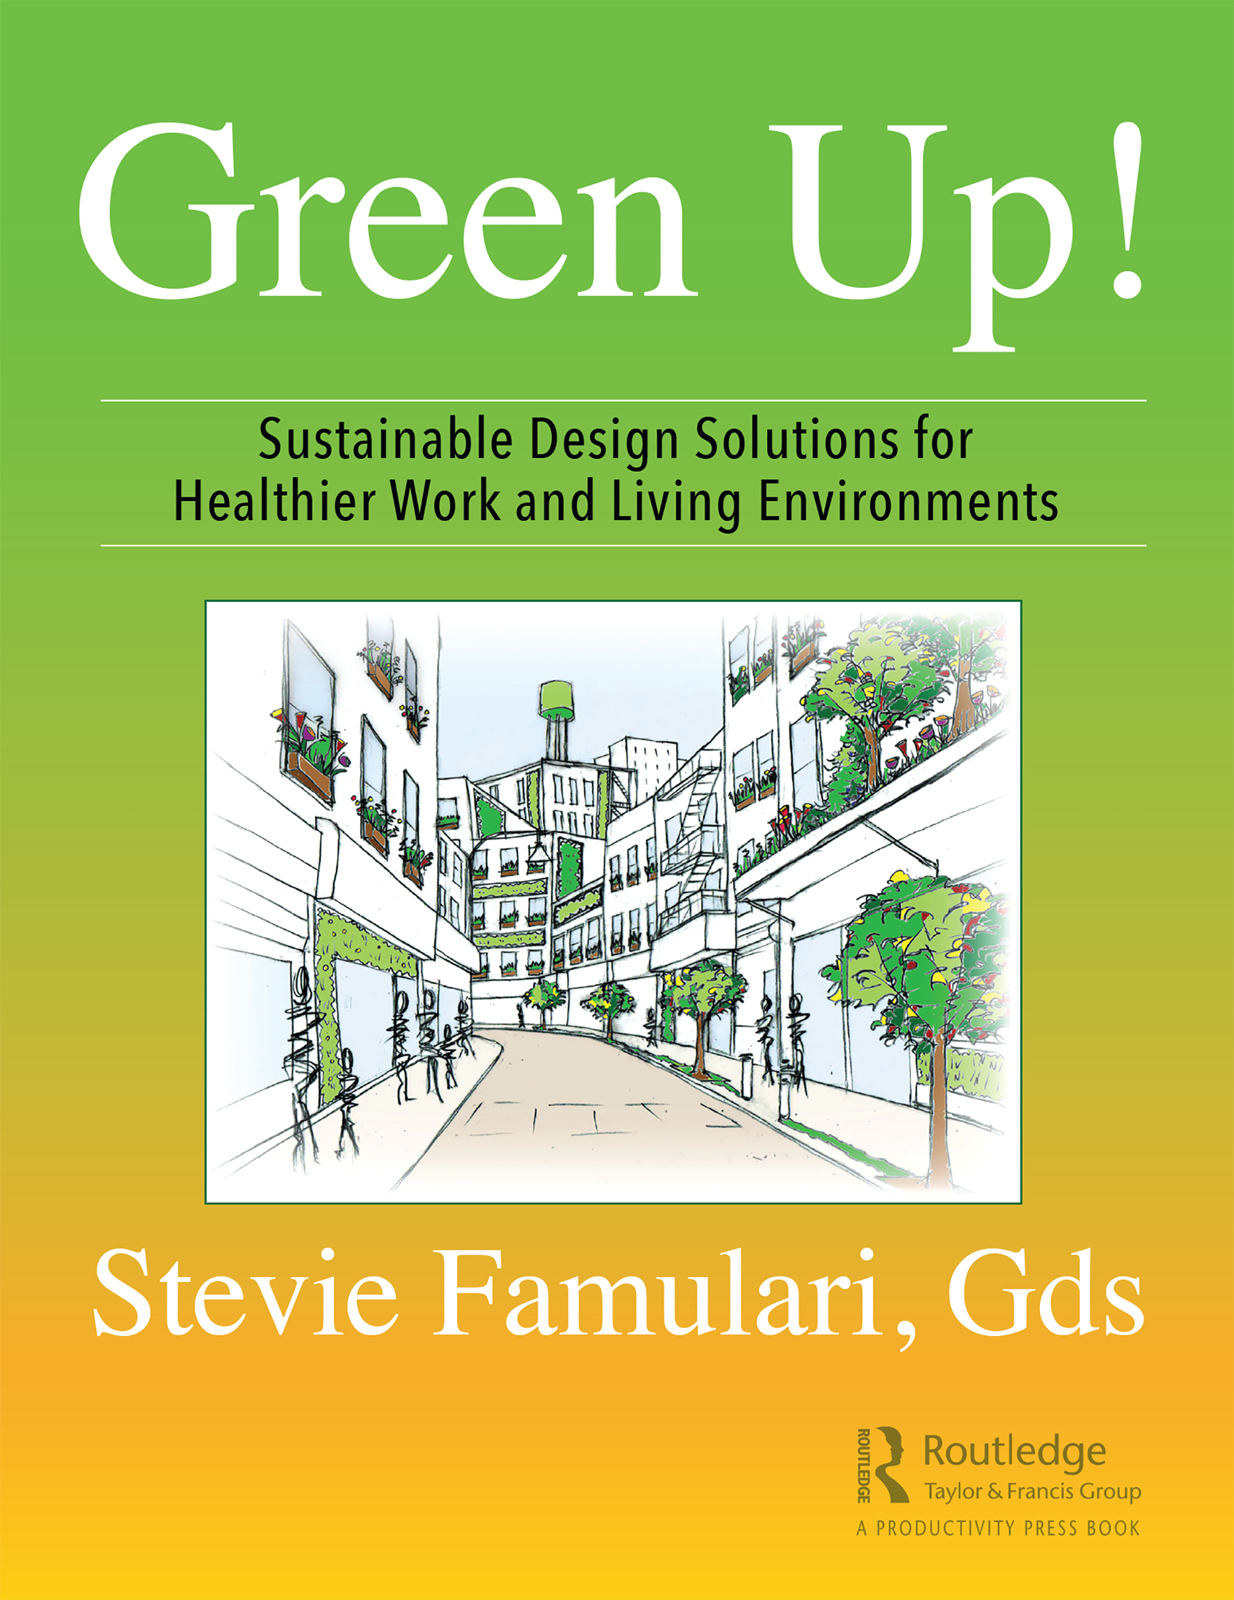 Green Up!: Sustainable Design Solutions for Healthier Work and Living Environments book cover